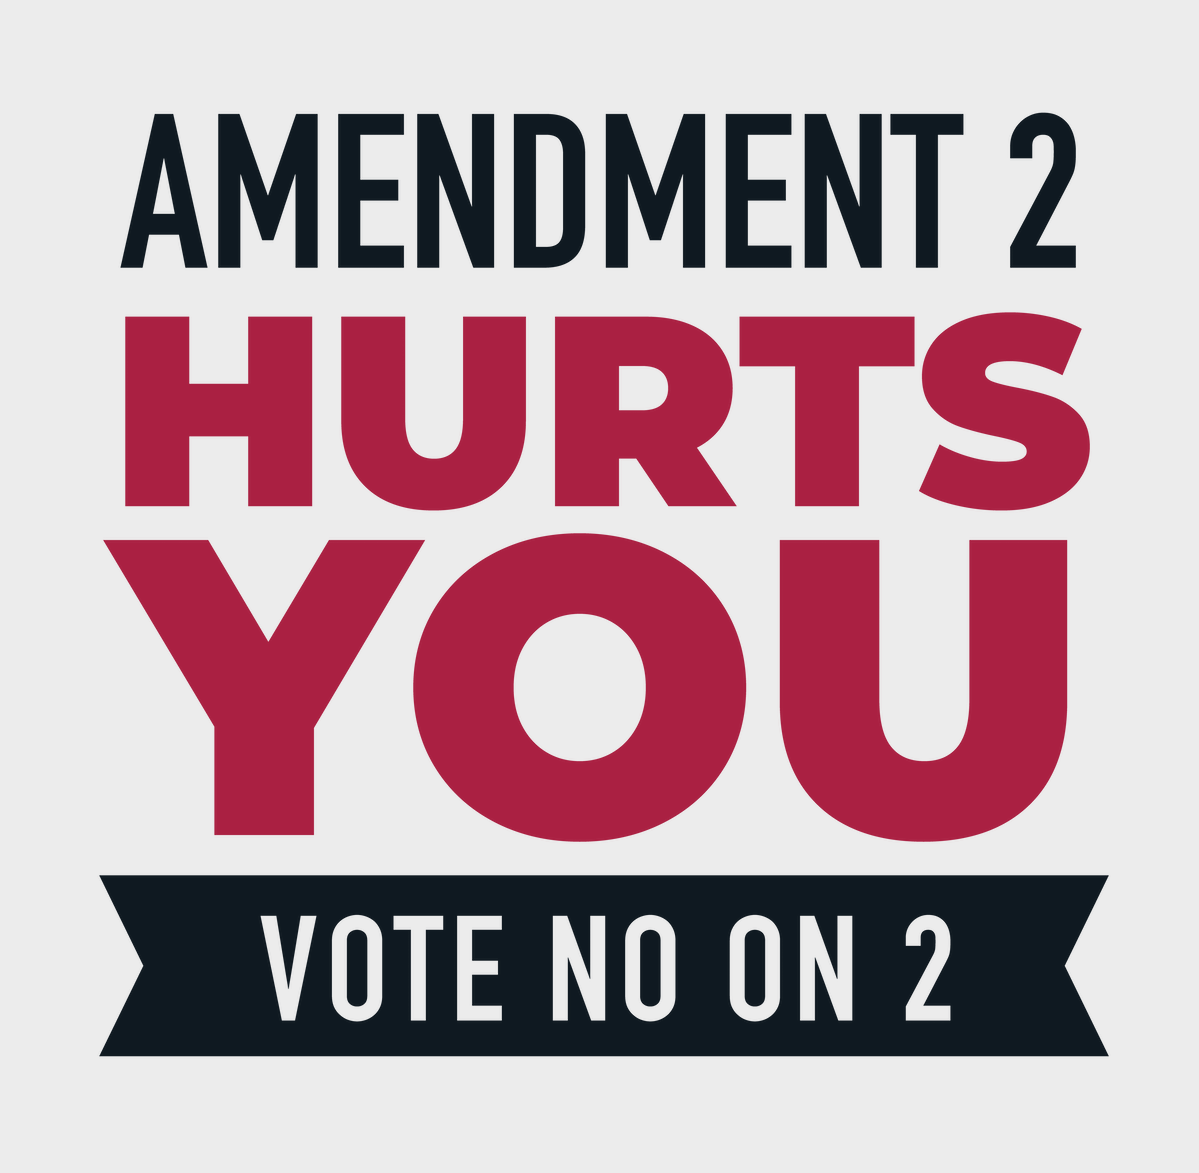 Amendment 2 Hurts You